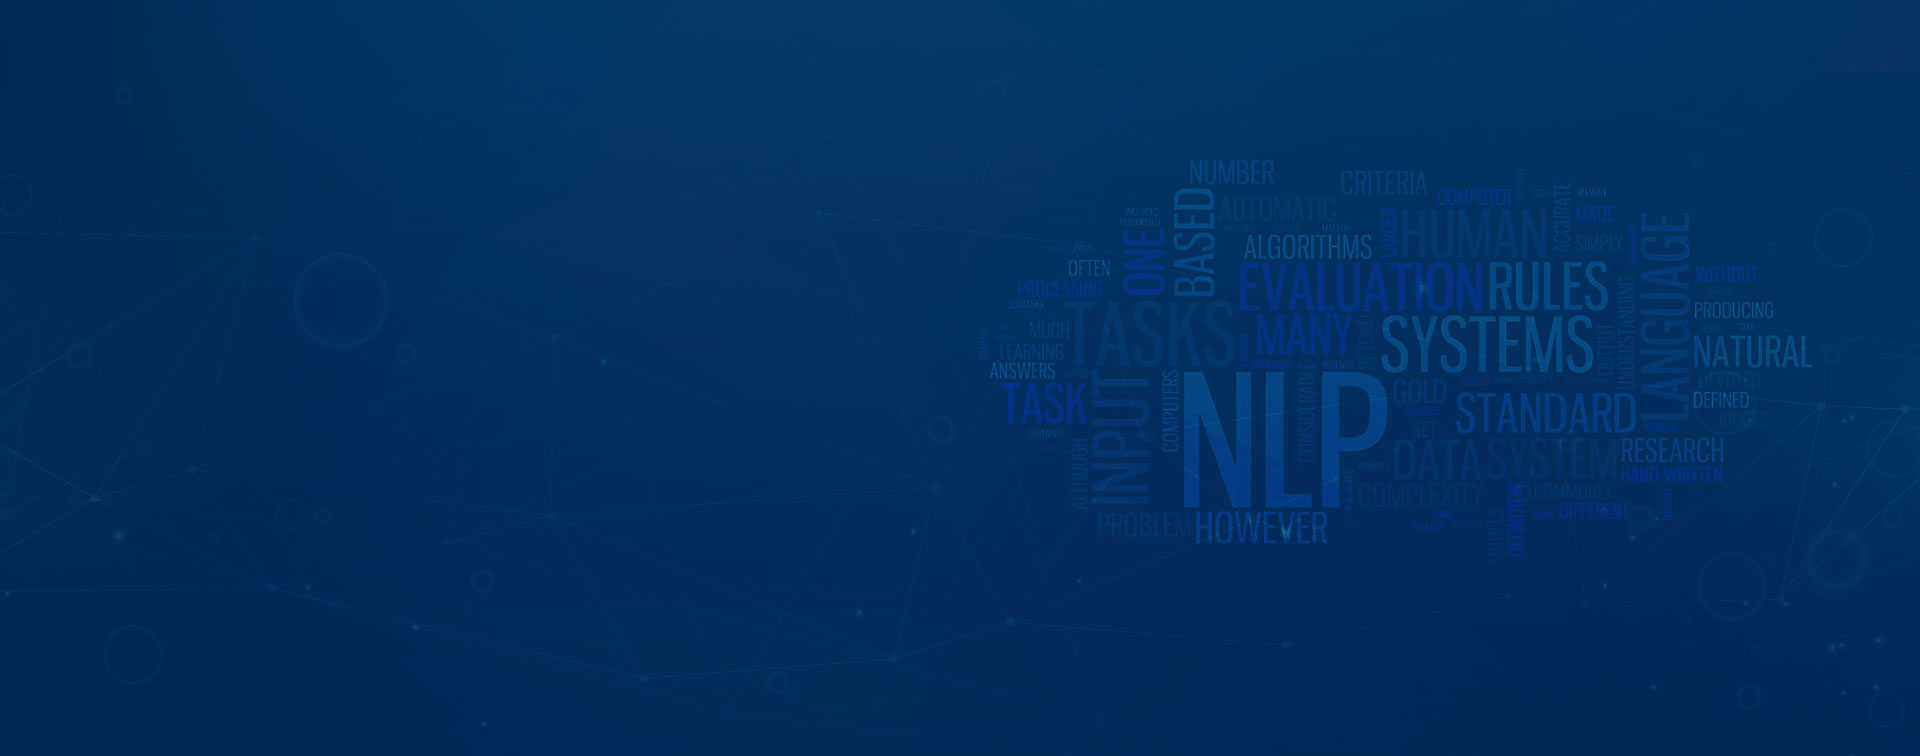 Natural Language Processing (NLP) Services